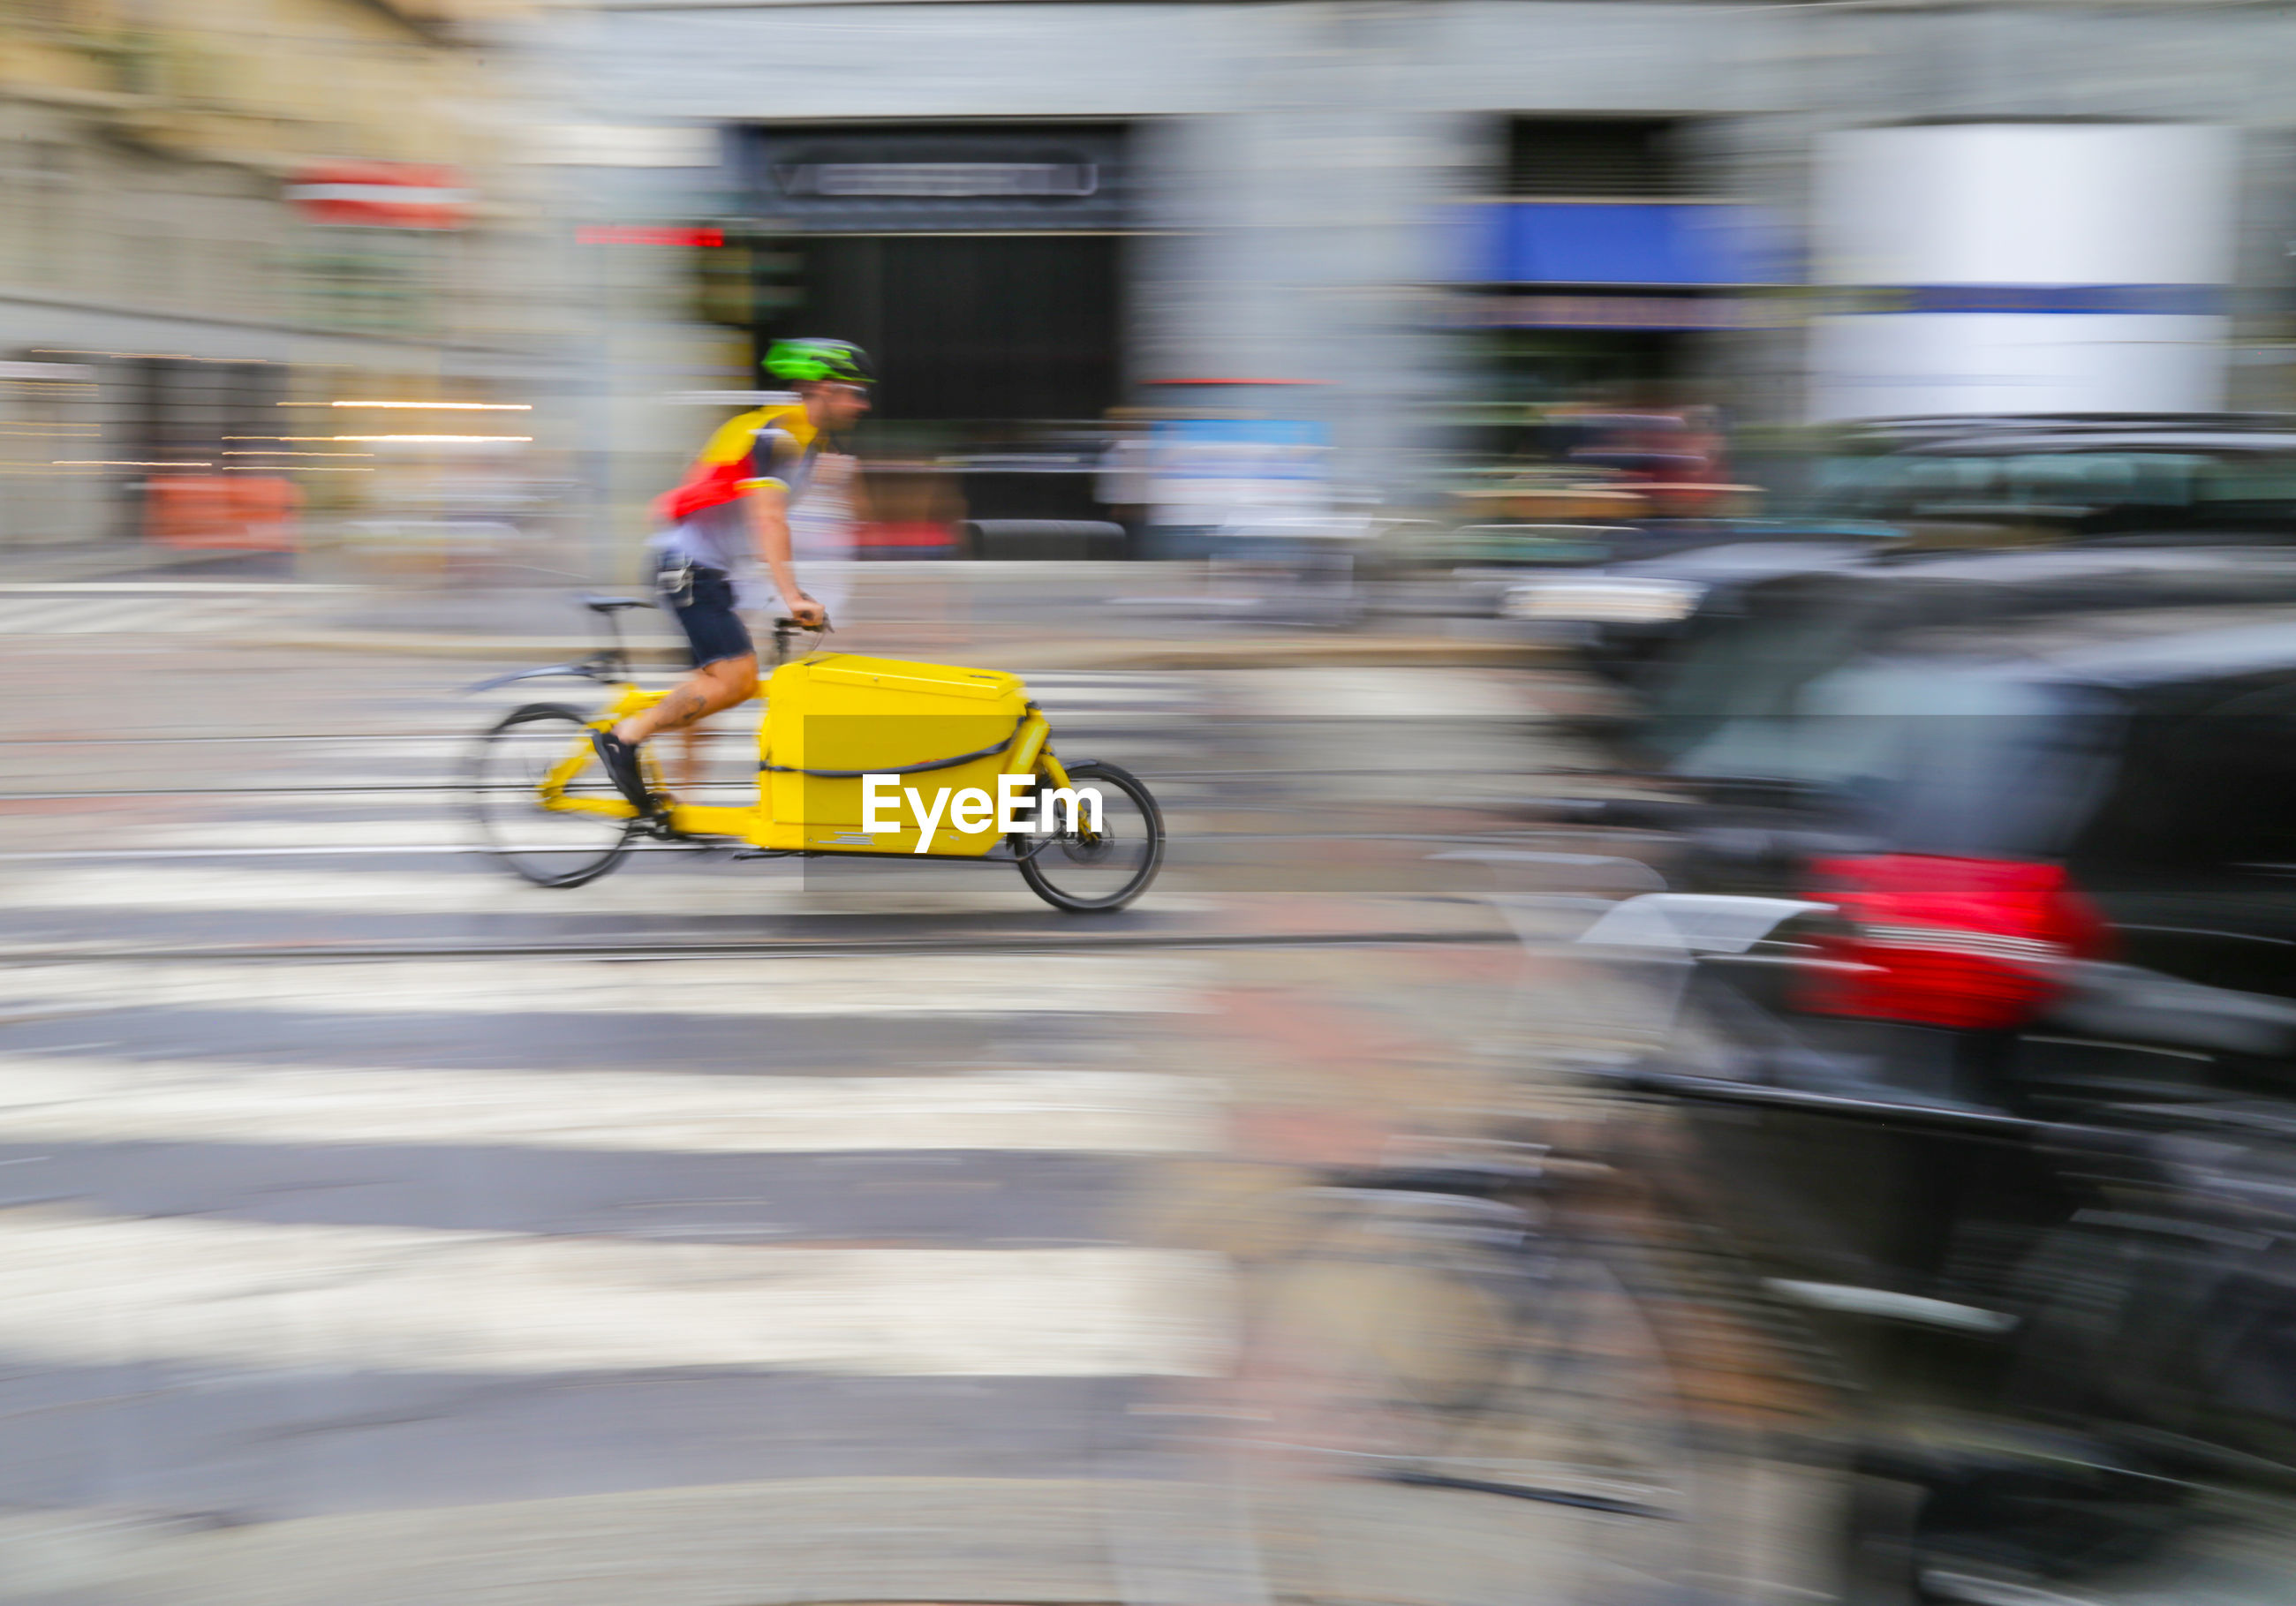 Blurred motion background with man riding a delivery bicycle on road